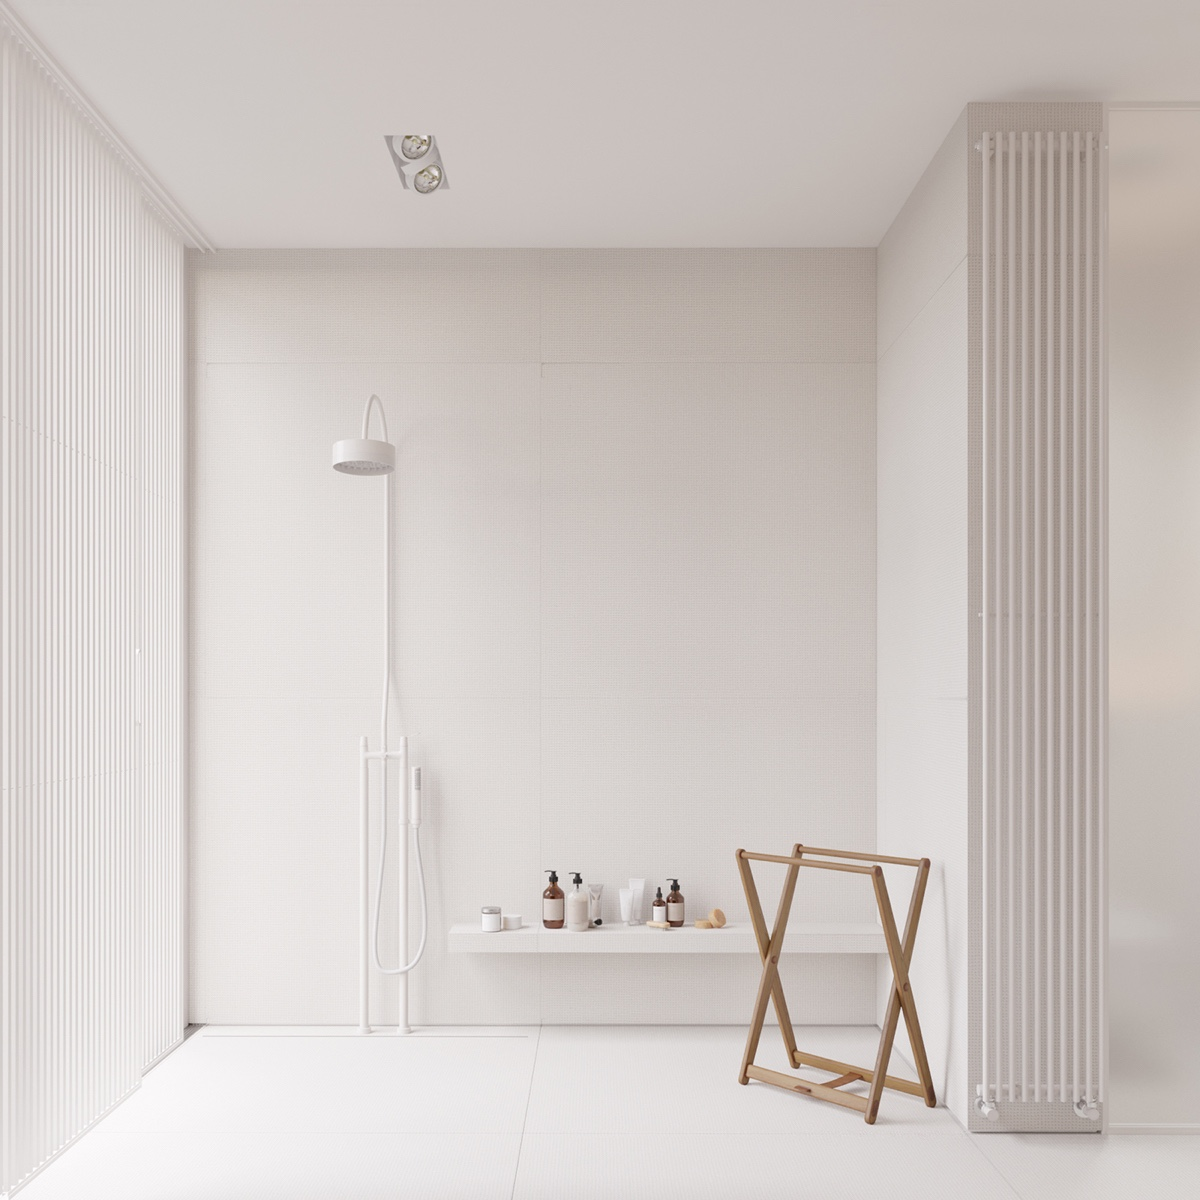 open-shower-white-bathroom-bathroom-accessory